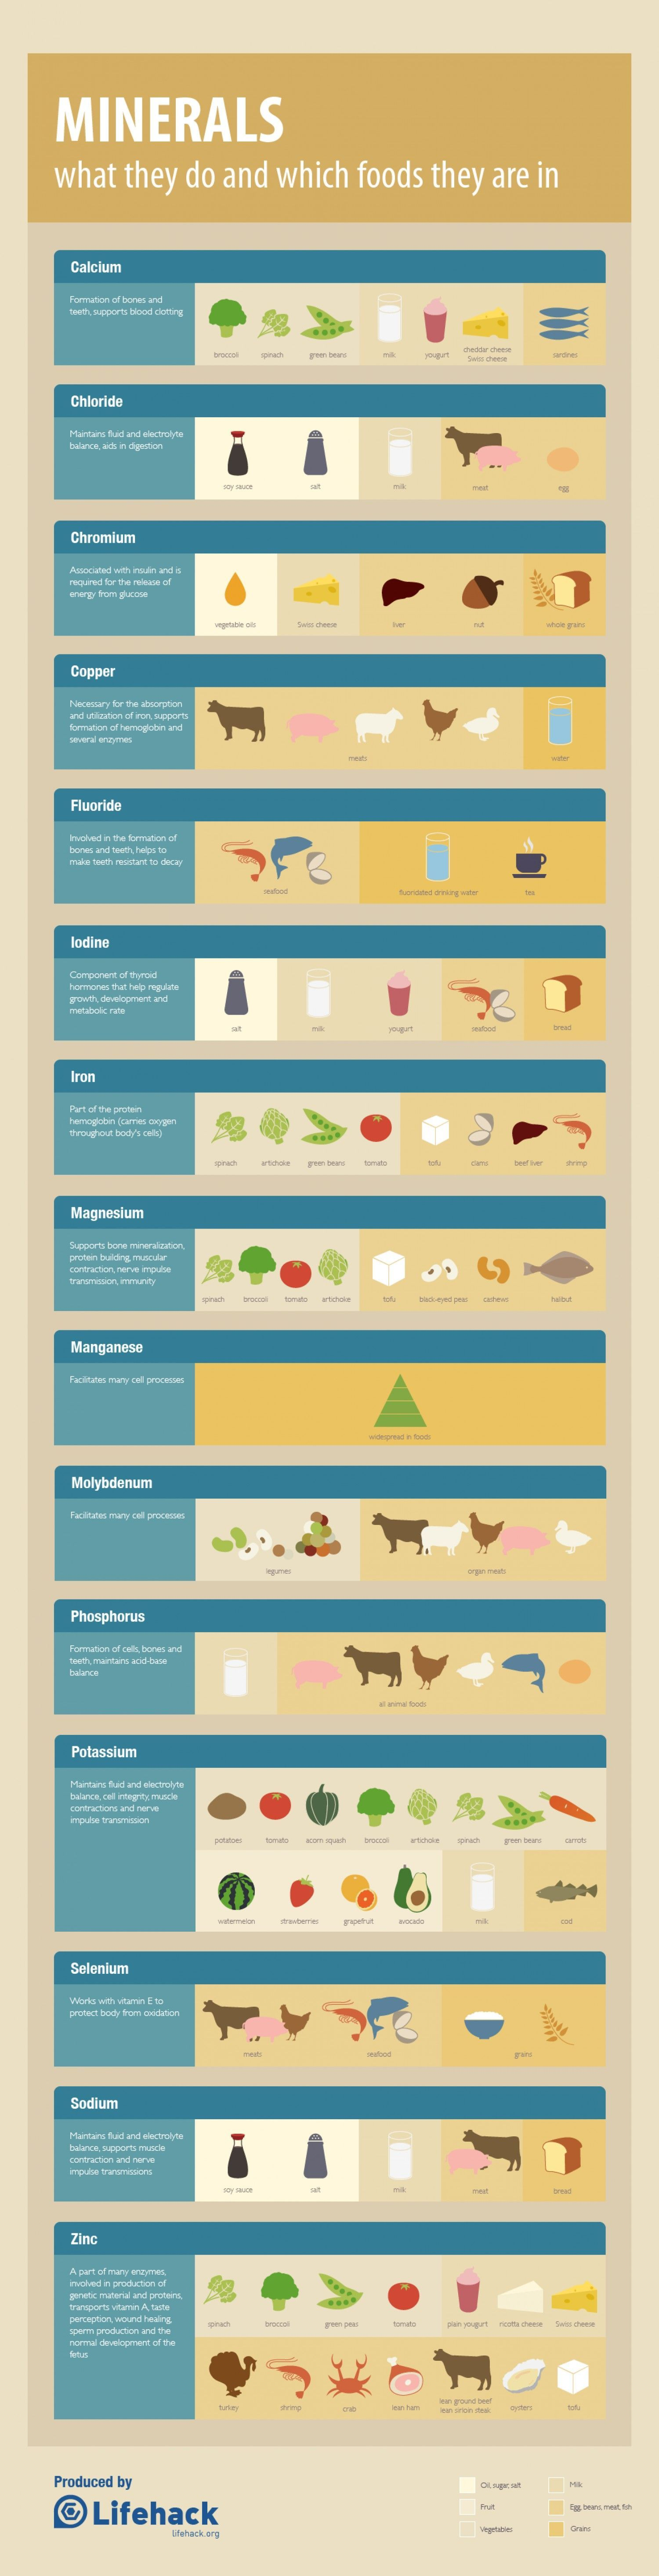 Pin By Erica Trends On Best Infographics